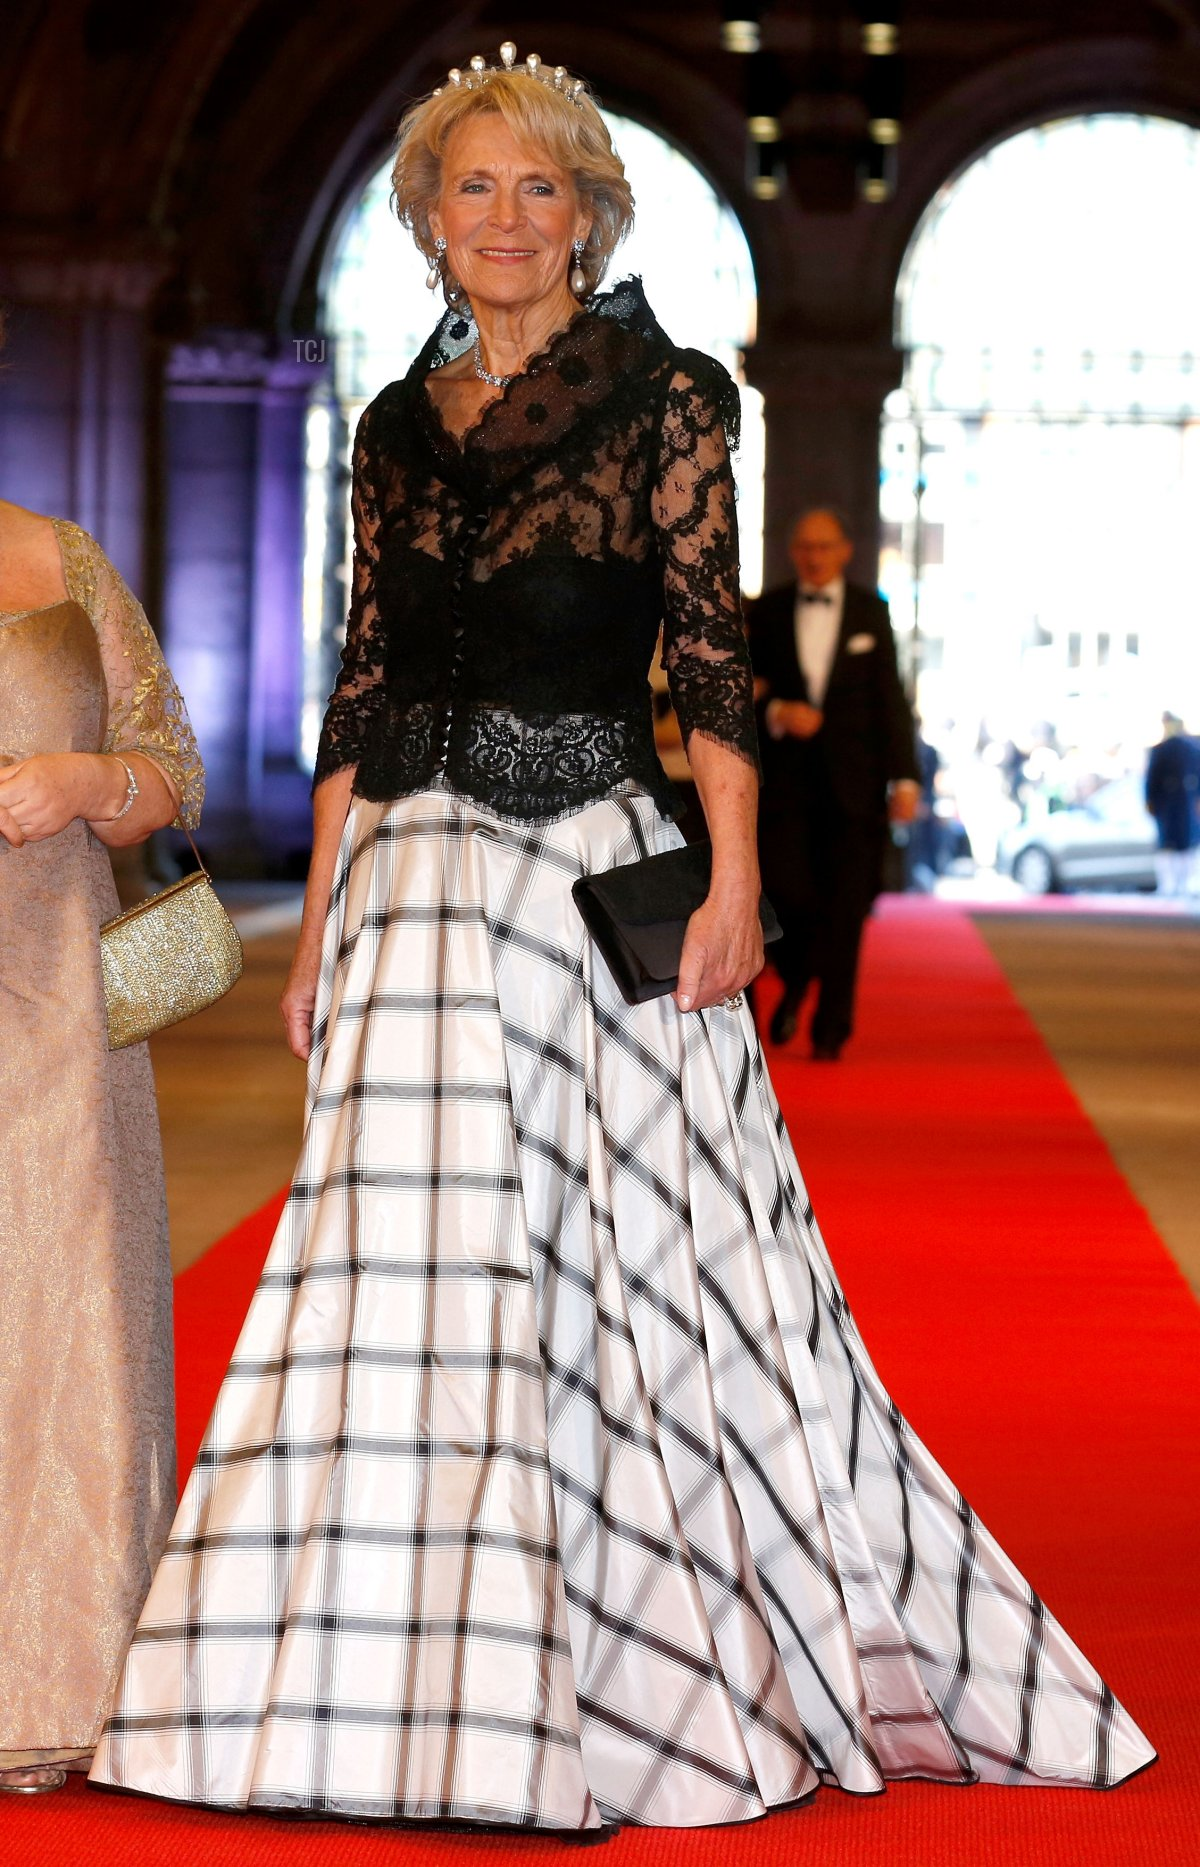 Princess Irene of the Netherlands attends a dinner hosted by Queen Beatrix of The Netherlands ahead of her abdication in favour of Crown Prince Willem Alexander at Rijksmuseum on April 29, 2013